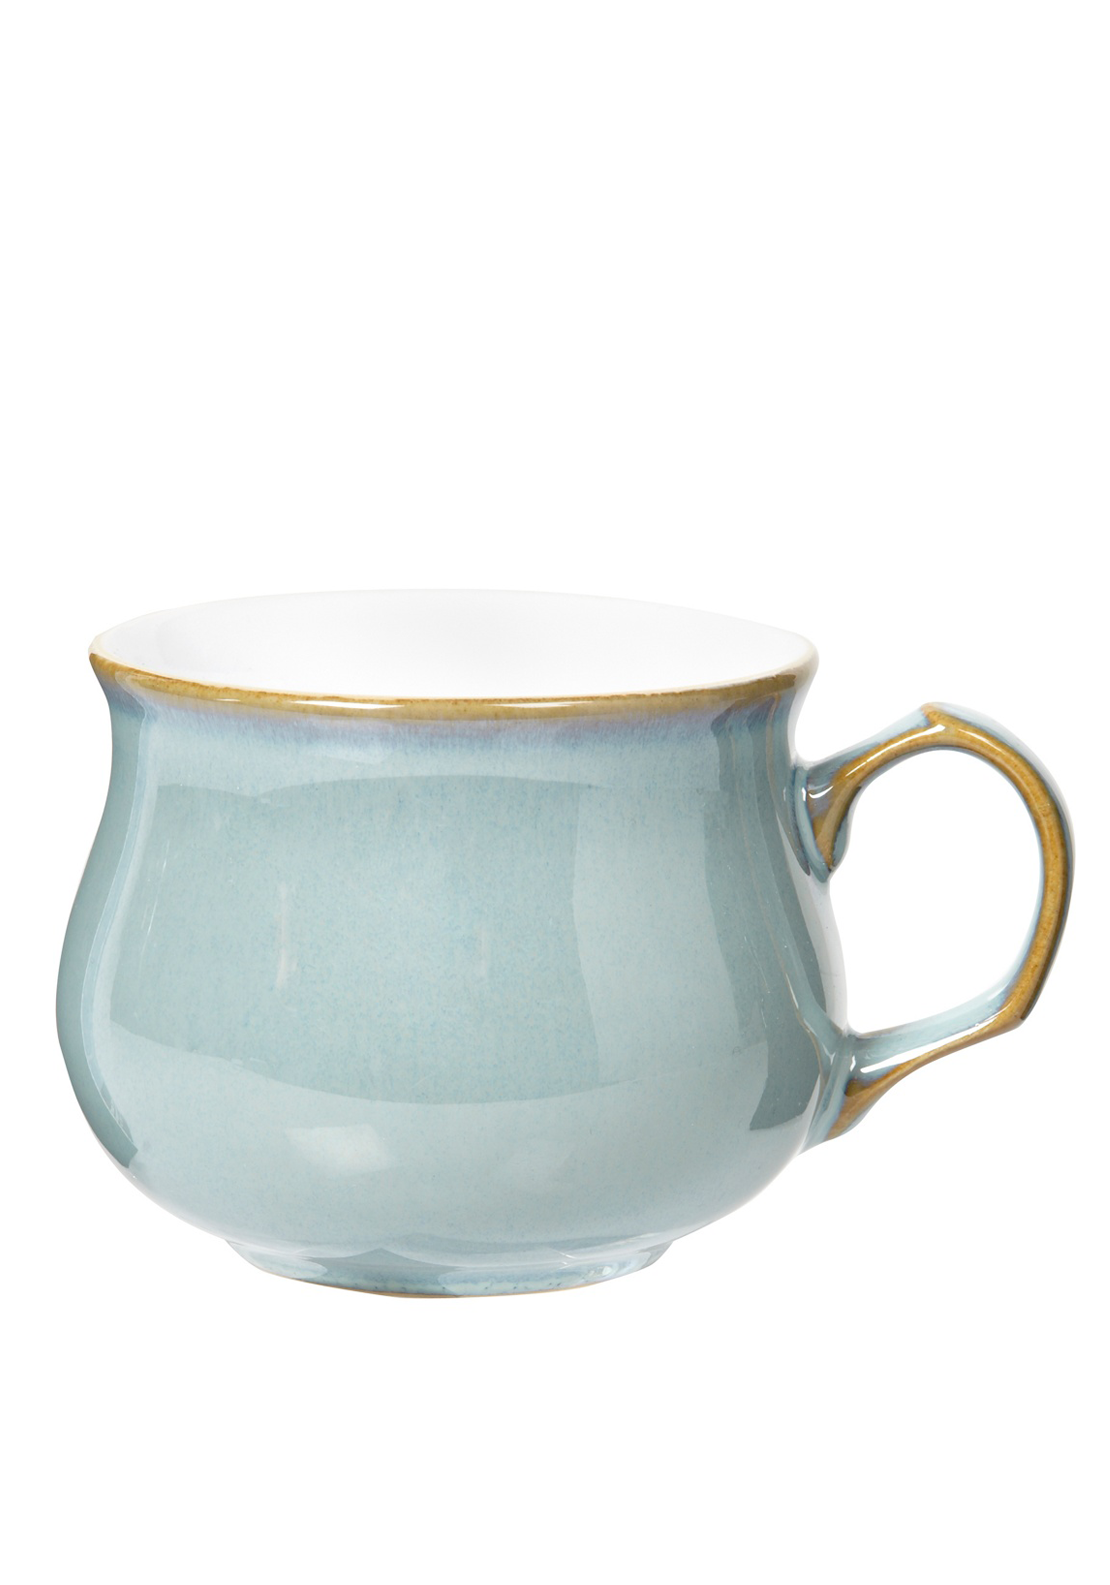 Denby Regency Green Teacup, Green